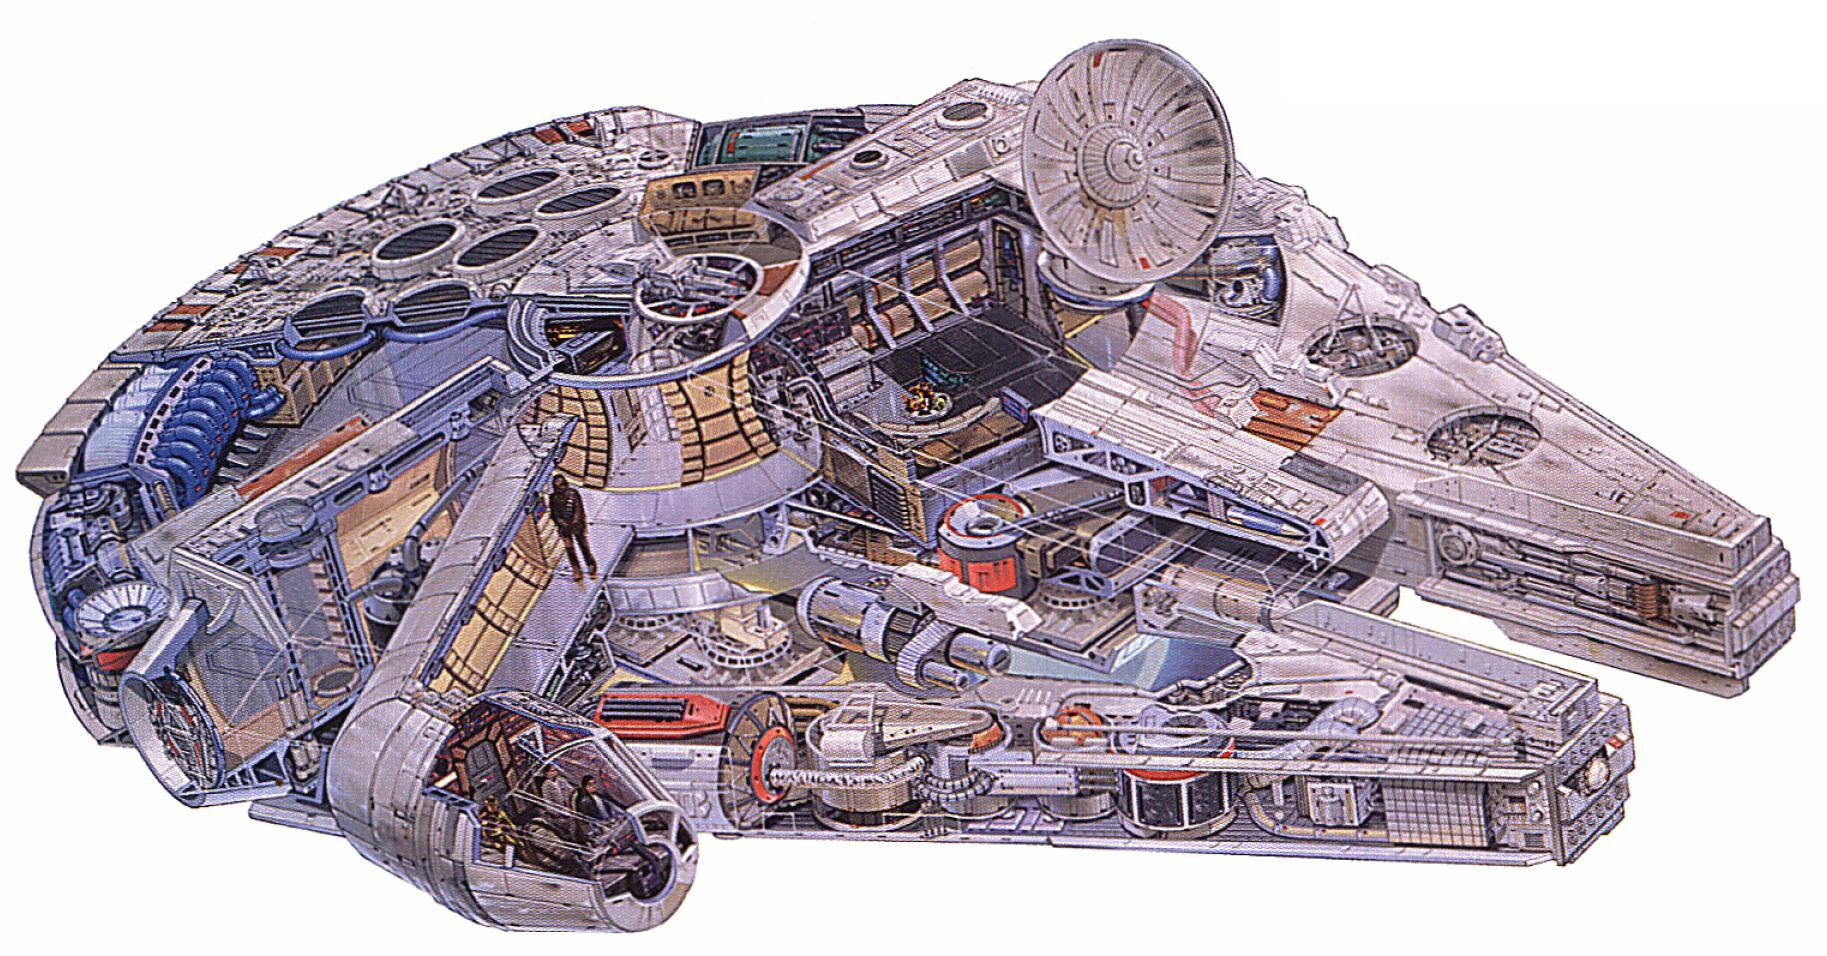 a cutout of the millenium falcon the ship of han solo harrison ford in star wars star wars. Black Bedroom Furniture Sets. Home Design Ideas